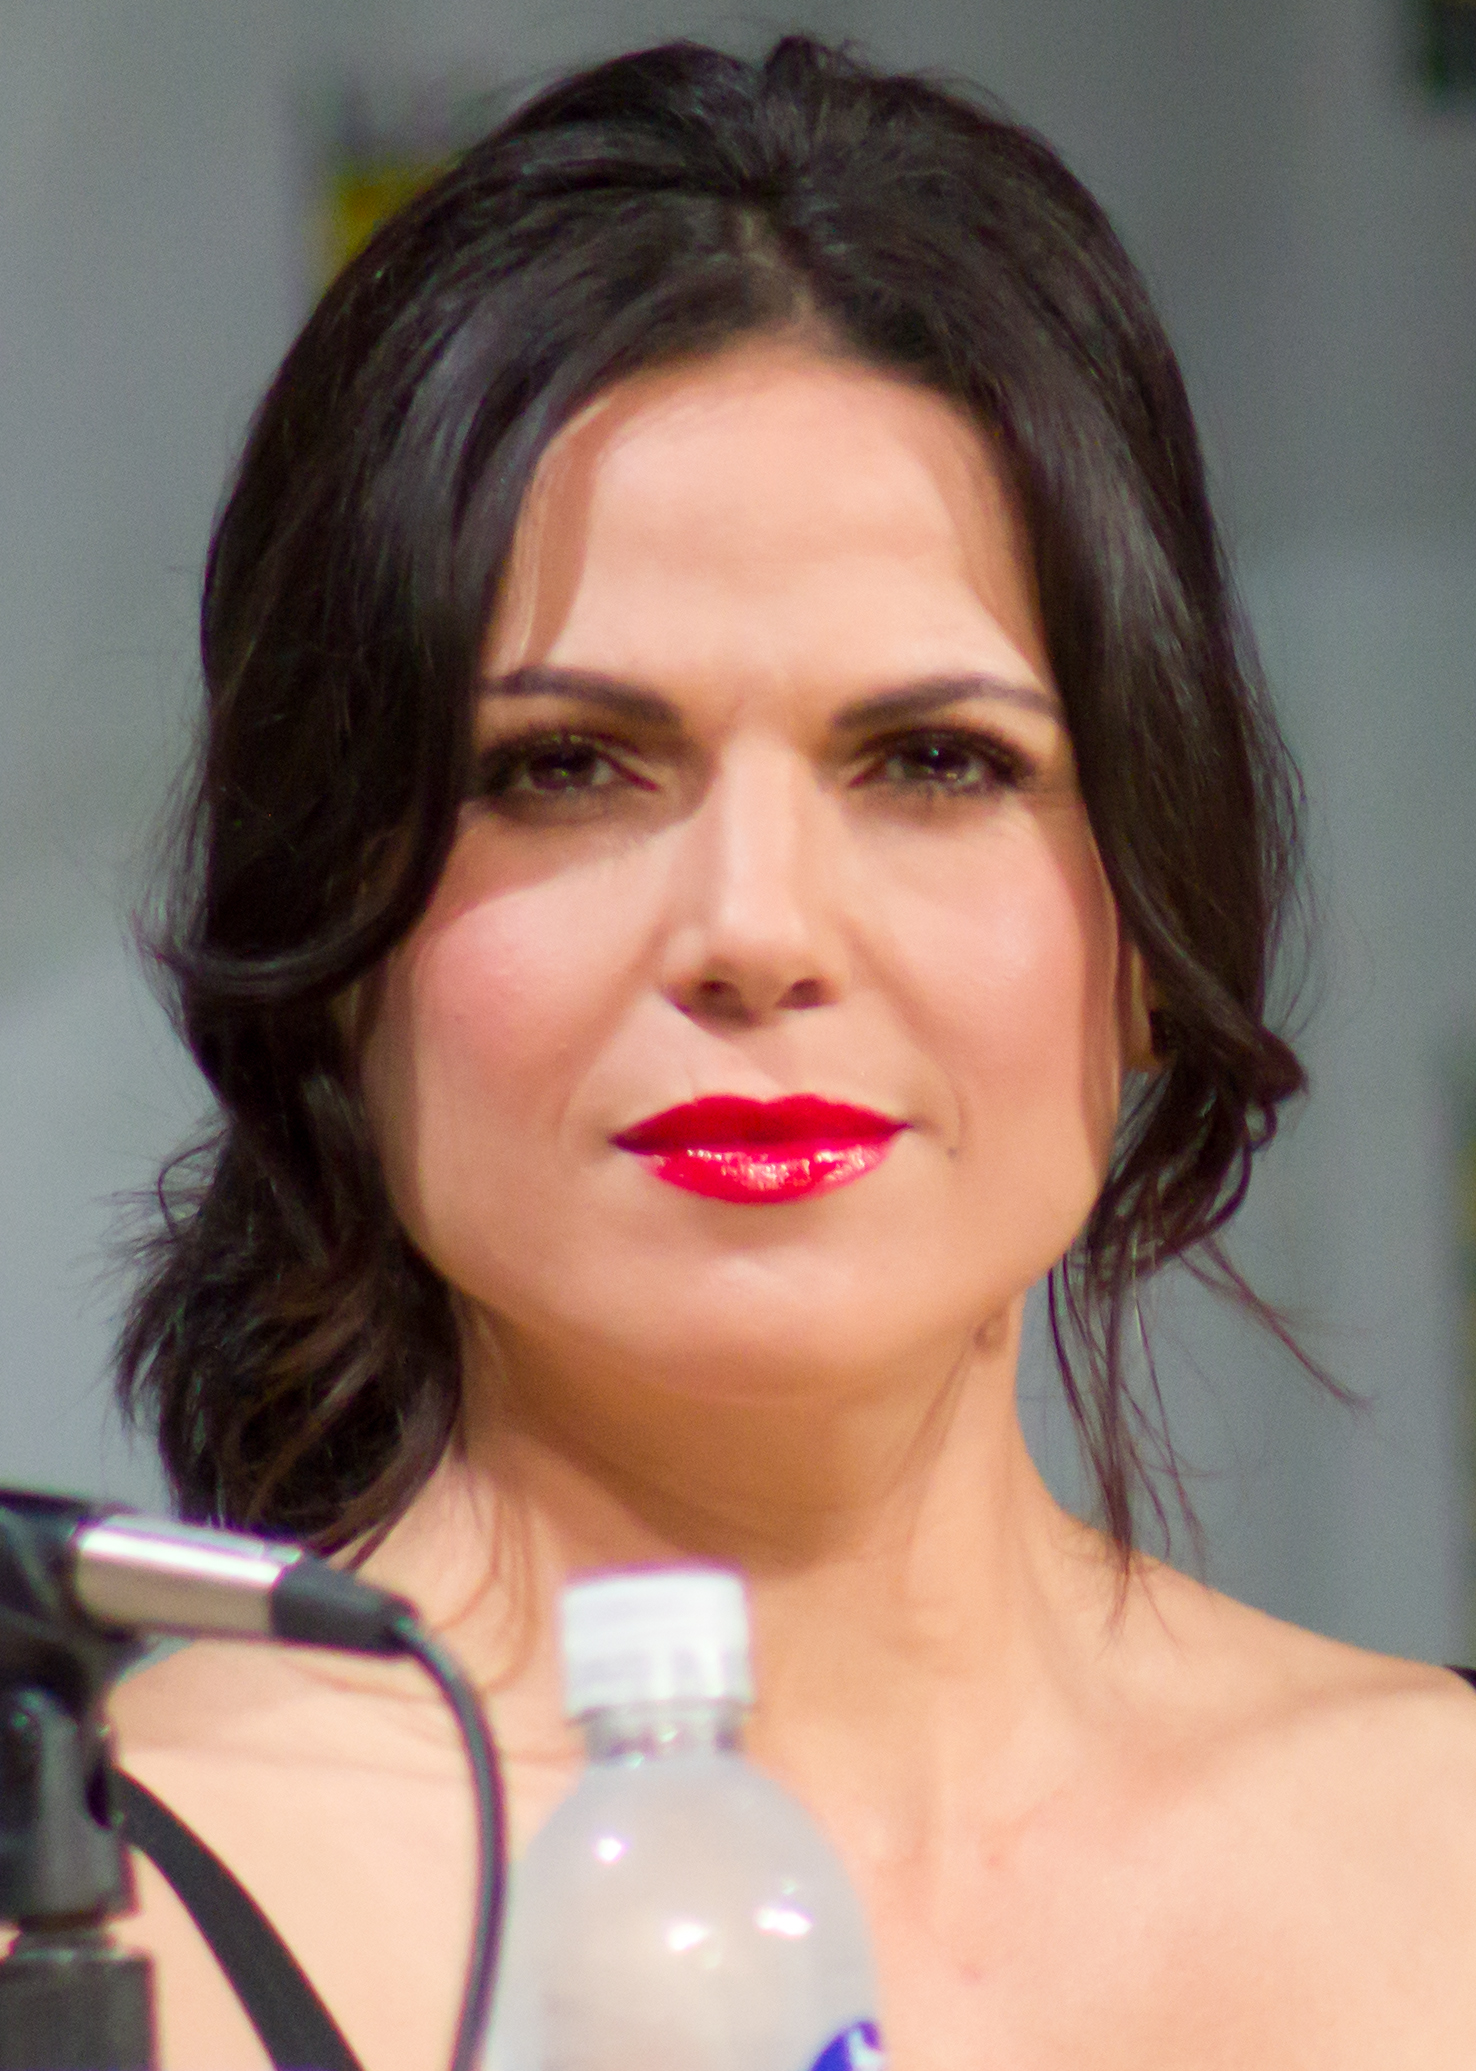 Discussion on this topic: Jacqueline Dalya, lana-parrilla/